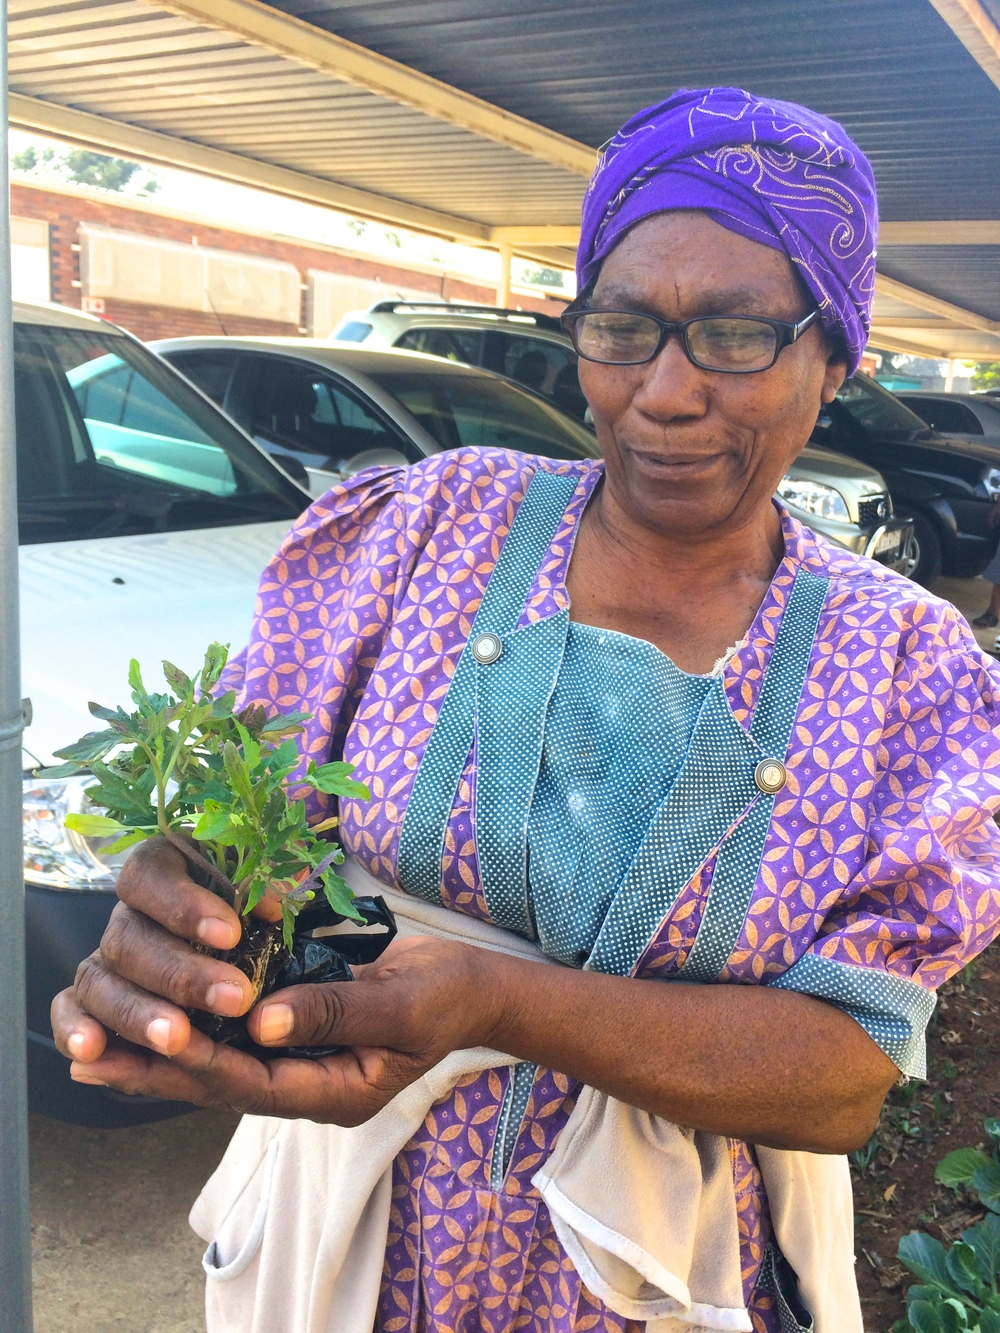 One of our Granny Gardeners humming a welcome song to our new batch of organic tomato seedlings donated by Ball Straathof nursery.